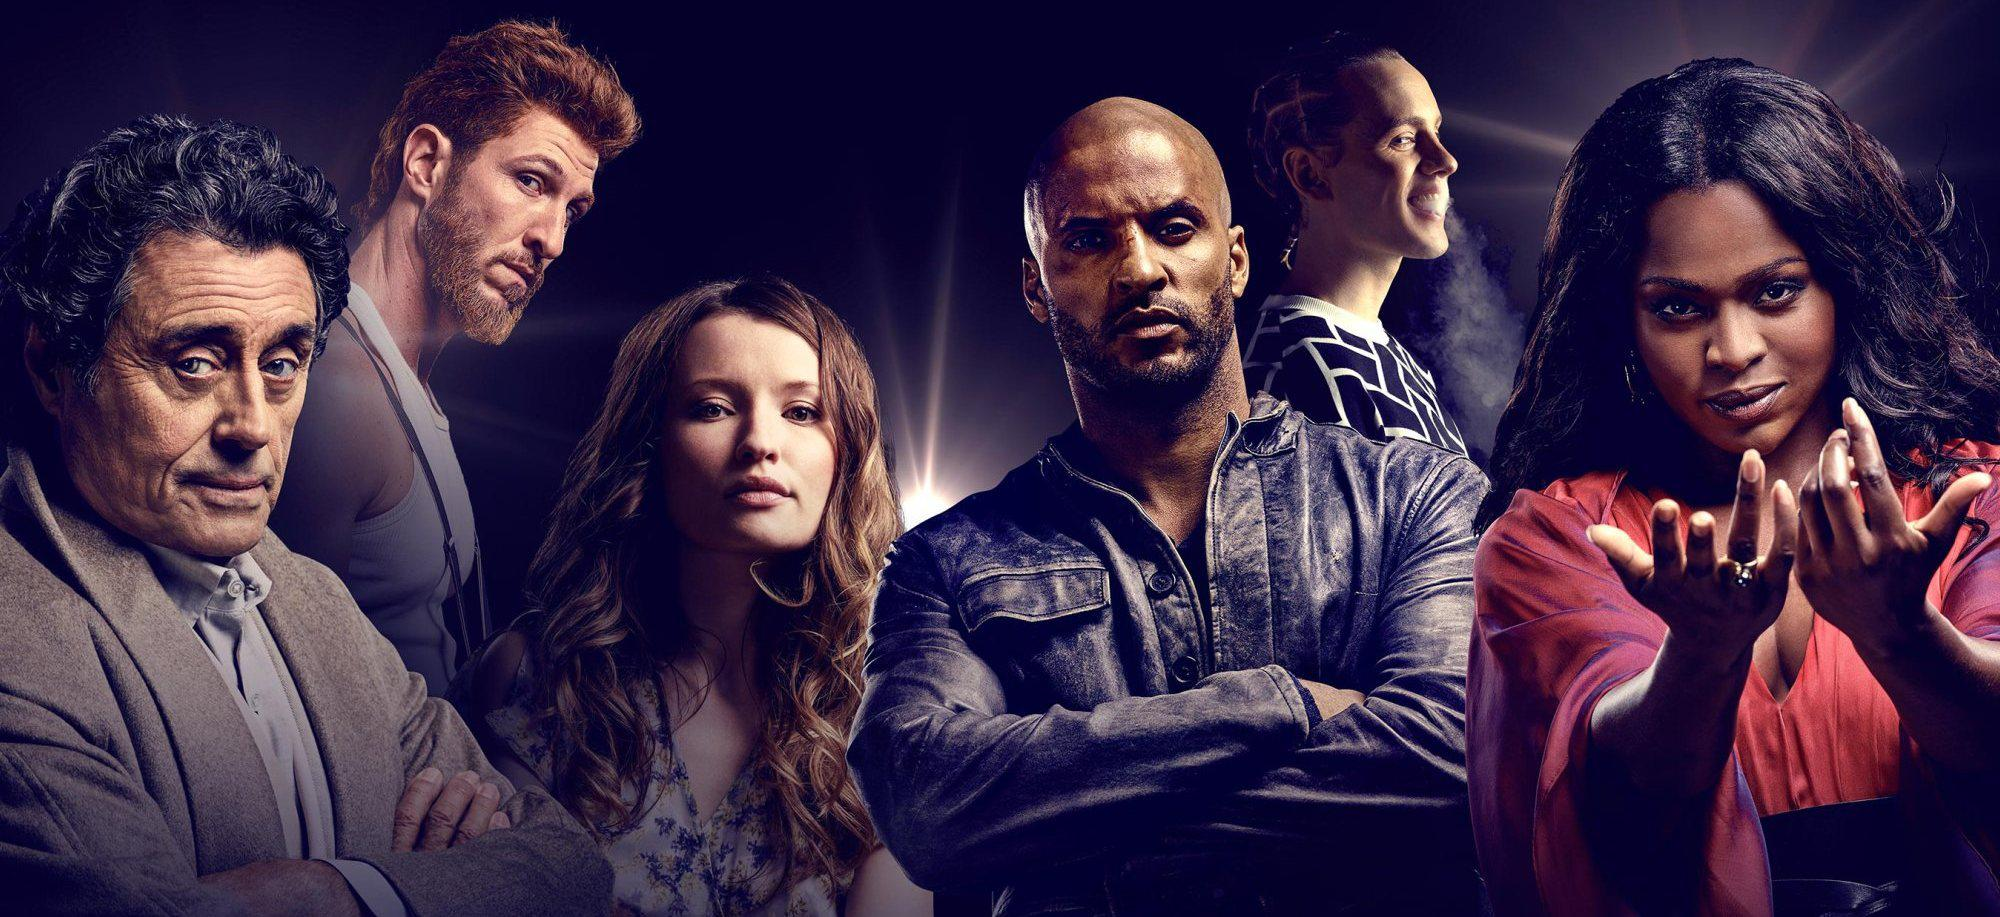 American Gods - Series - characters